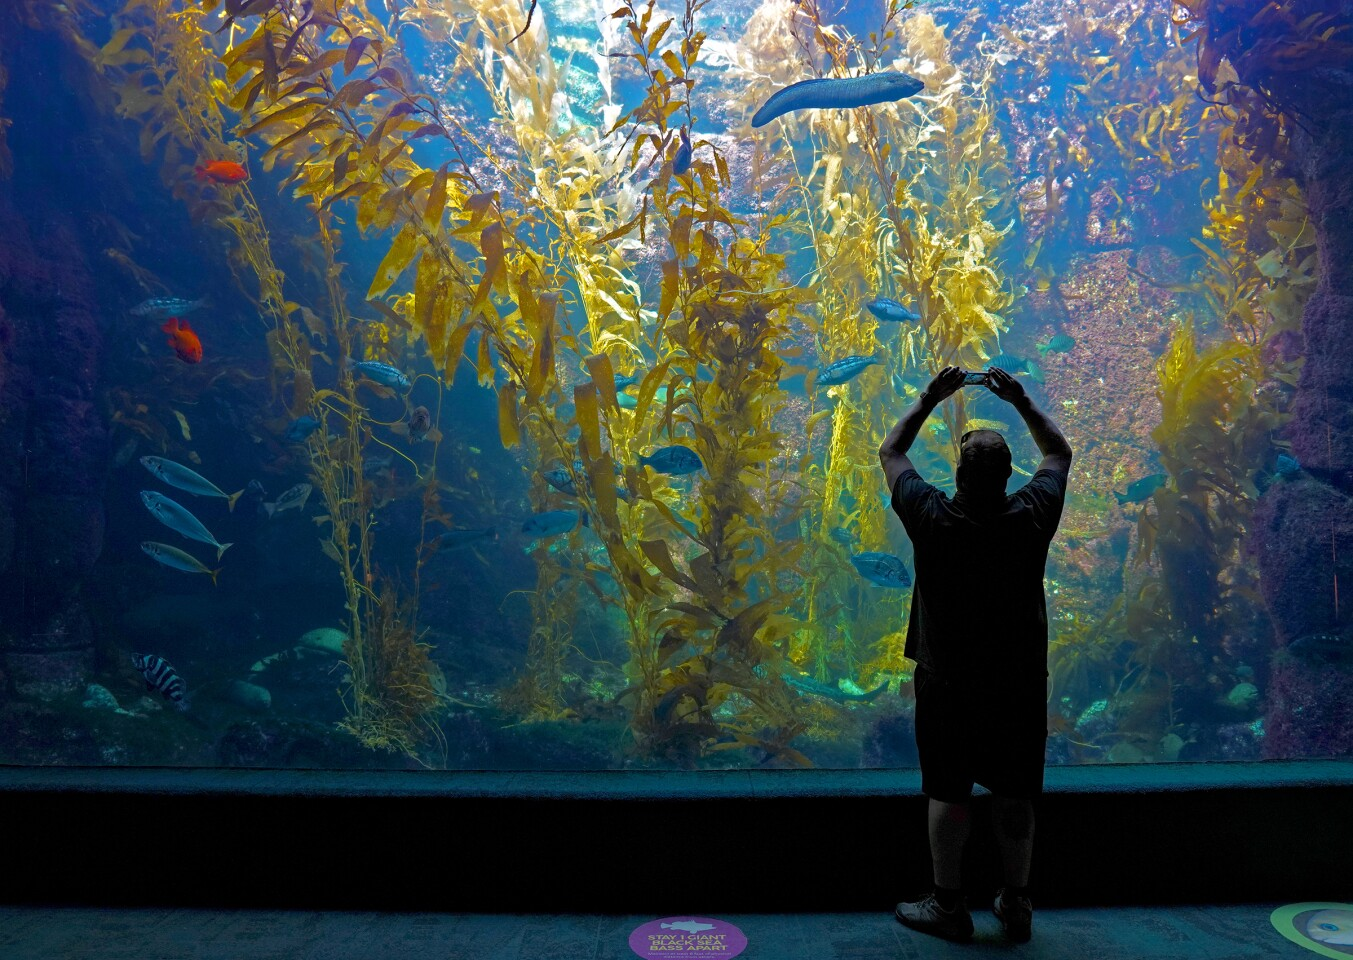 A man uses his cell phone to take a photo of fish in the large kelp forest tank at the Birch Aquarium.